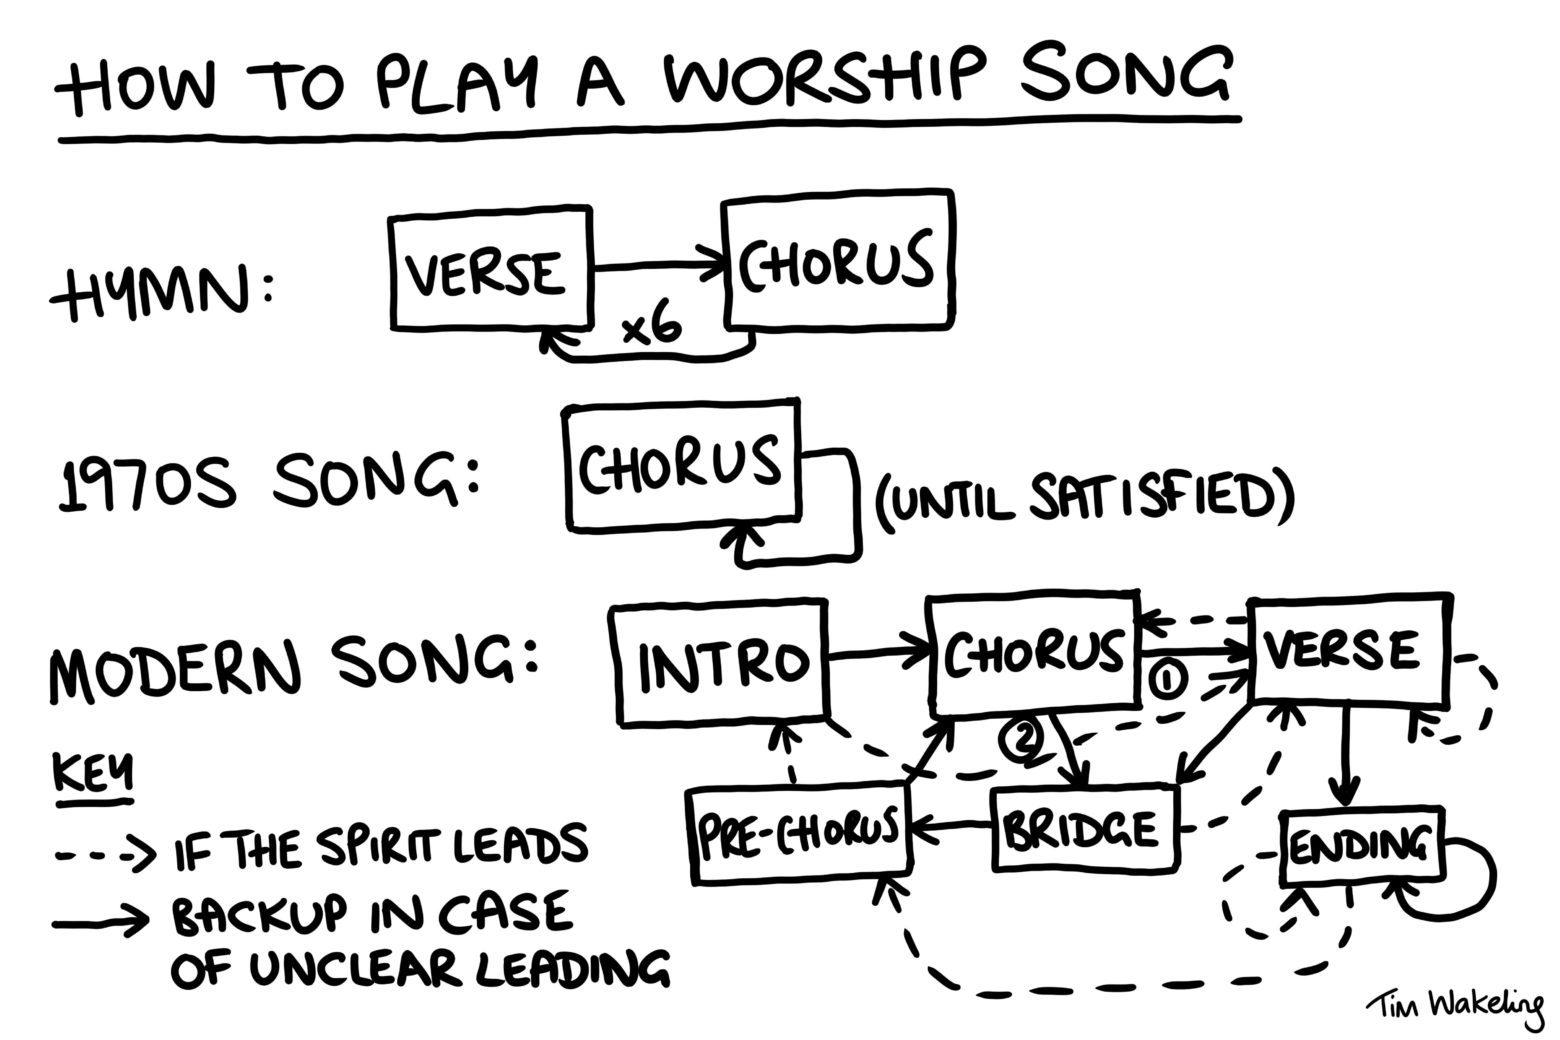 How to play a worship song